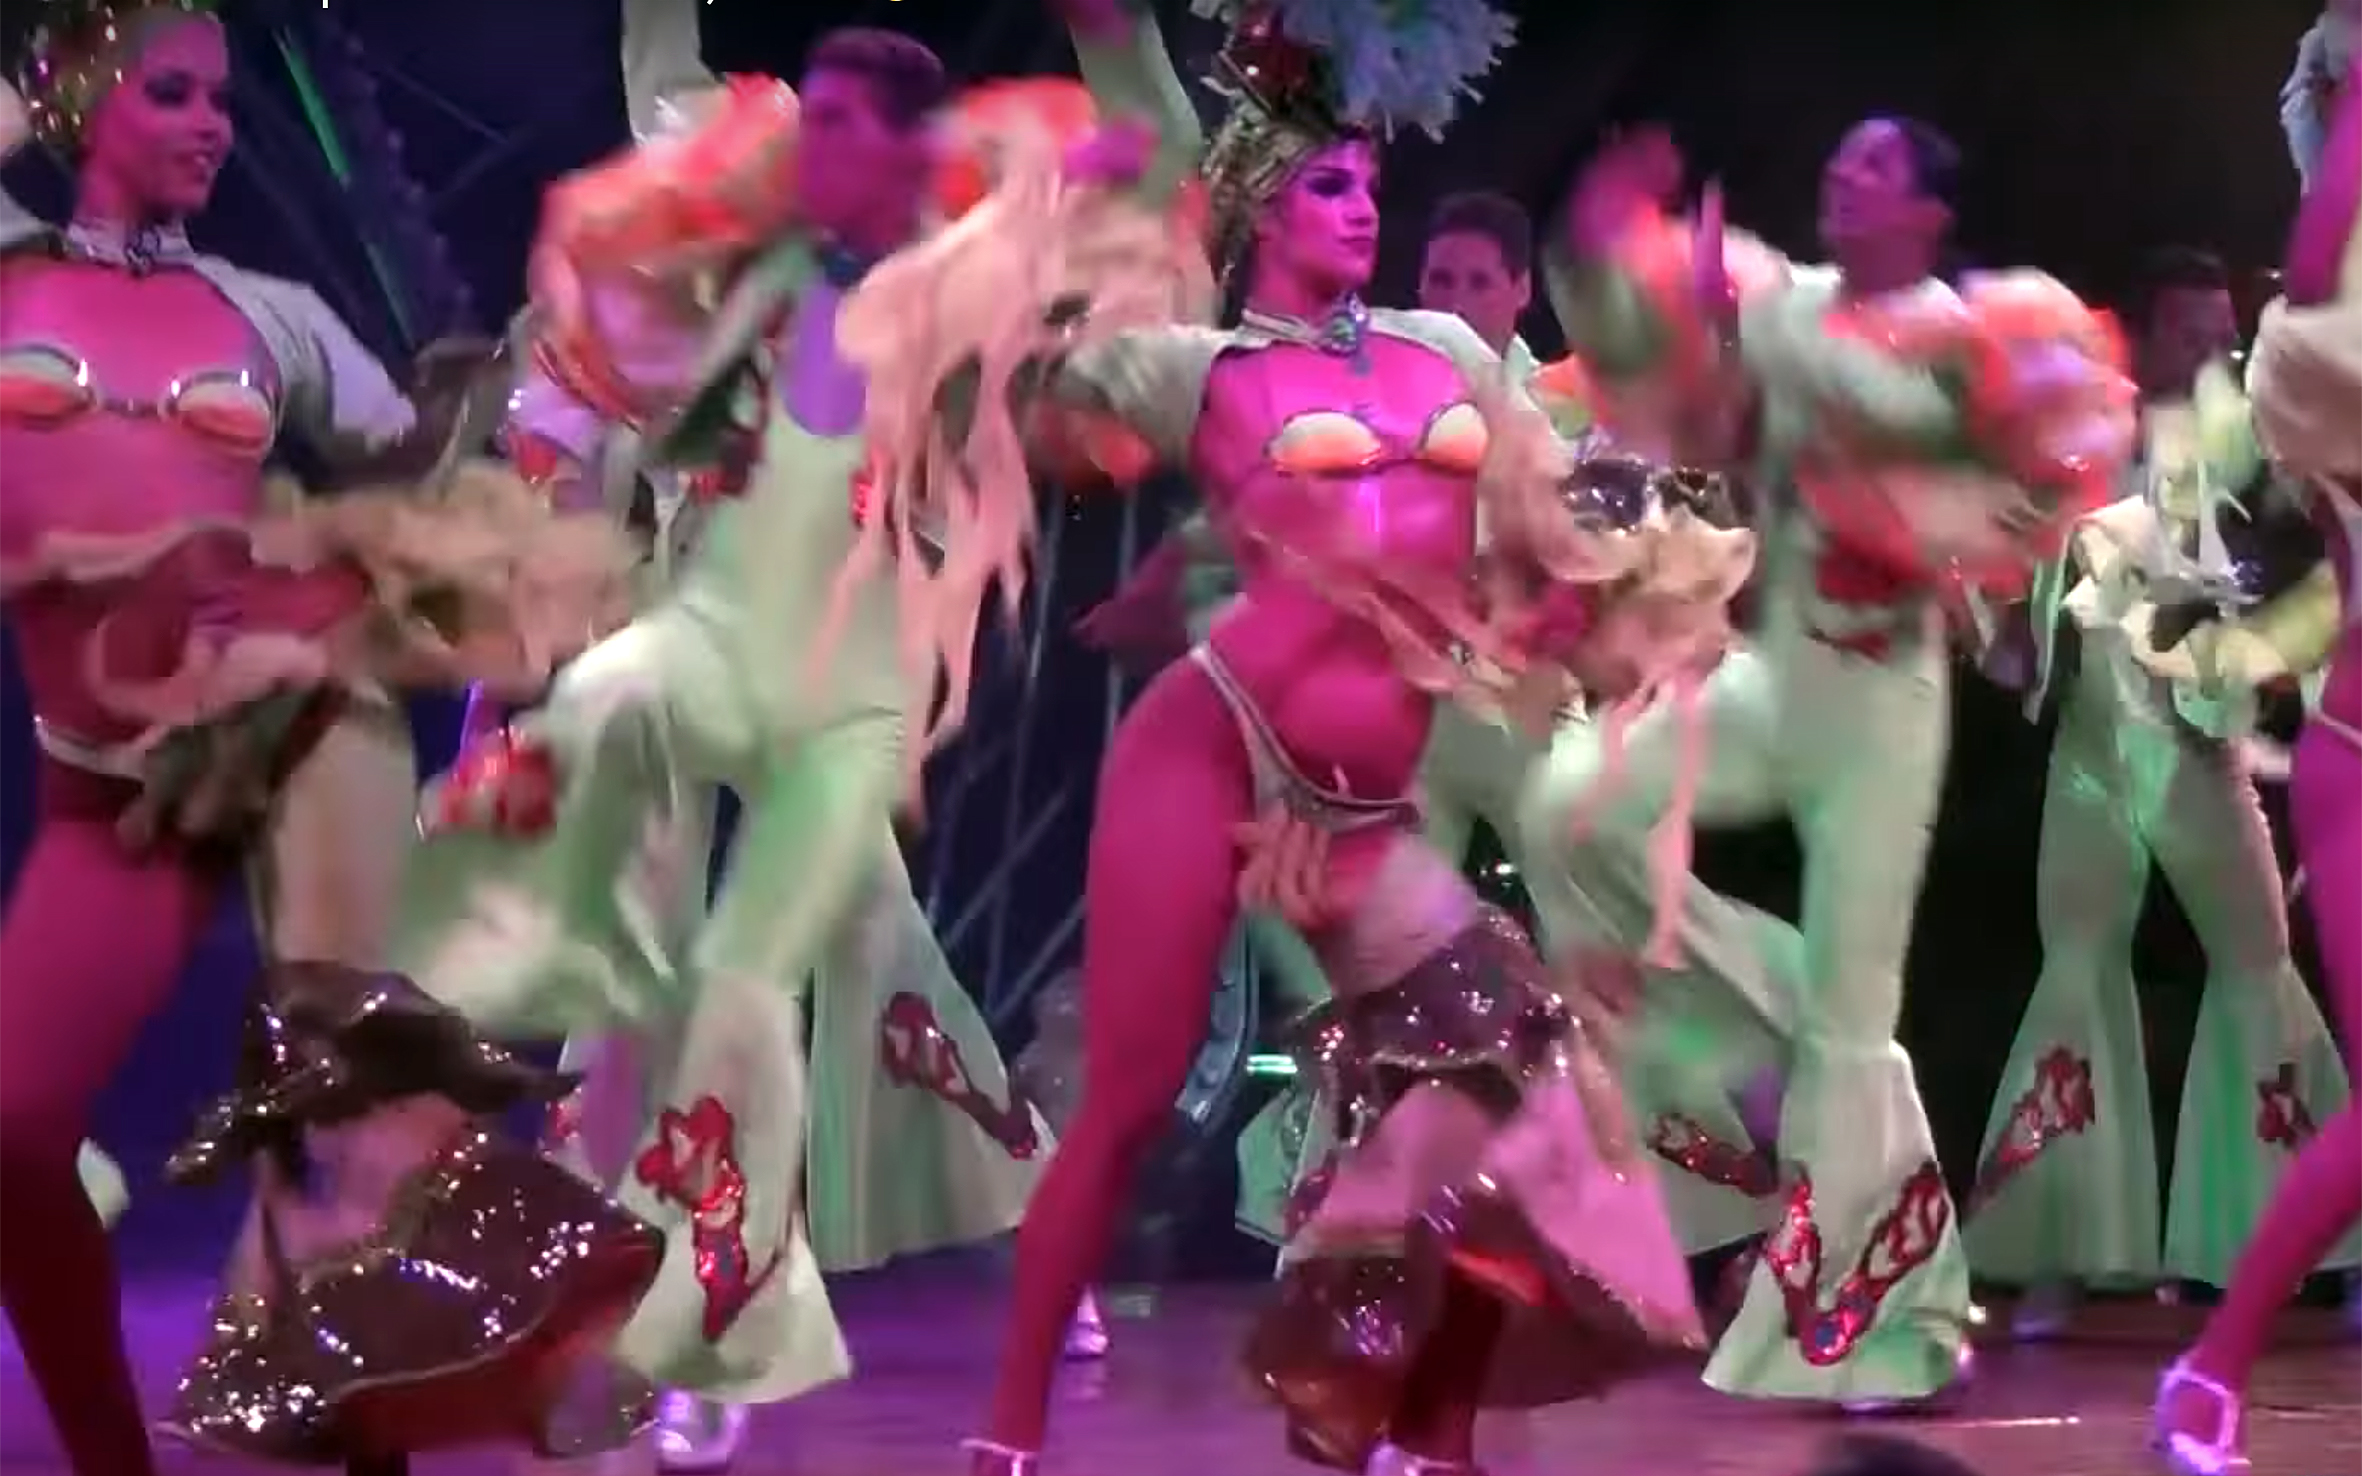 911.Tropicana DANCE / Cuba - Tropicana DANCE is a name for dance performances in the Tropicana Club, a world-known cabaret and club in Havana, Cuba. It was launched in 1939 at Villa Mina, a six-acre (24,000 m²) suburban estate with lush tropical gardens in Havana's Marianao neighbourhood. It is also well known for its exotic dancers and their performances.